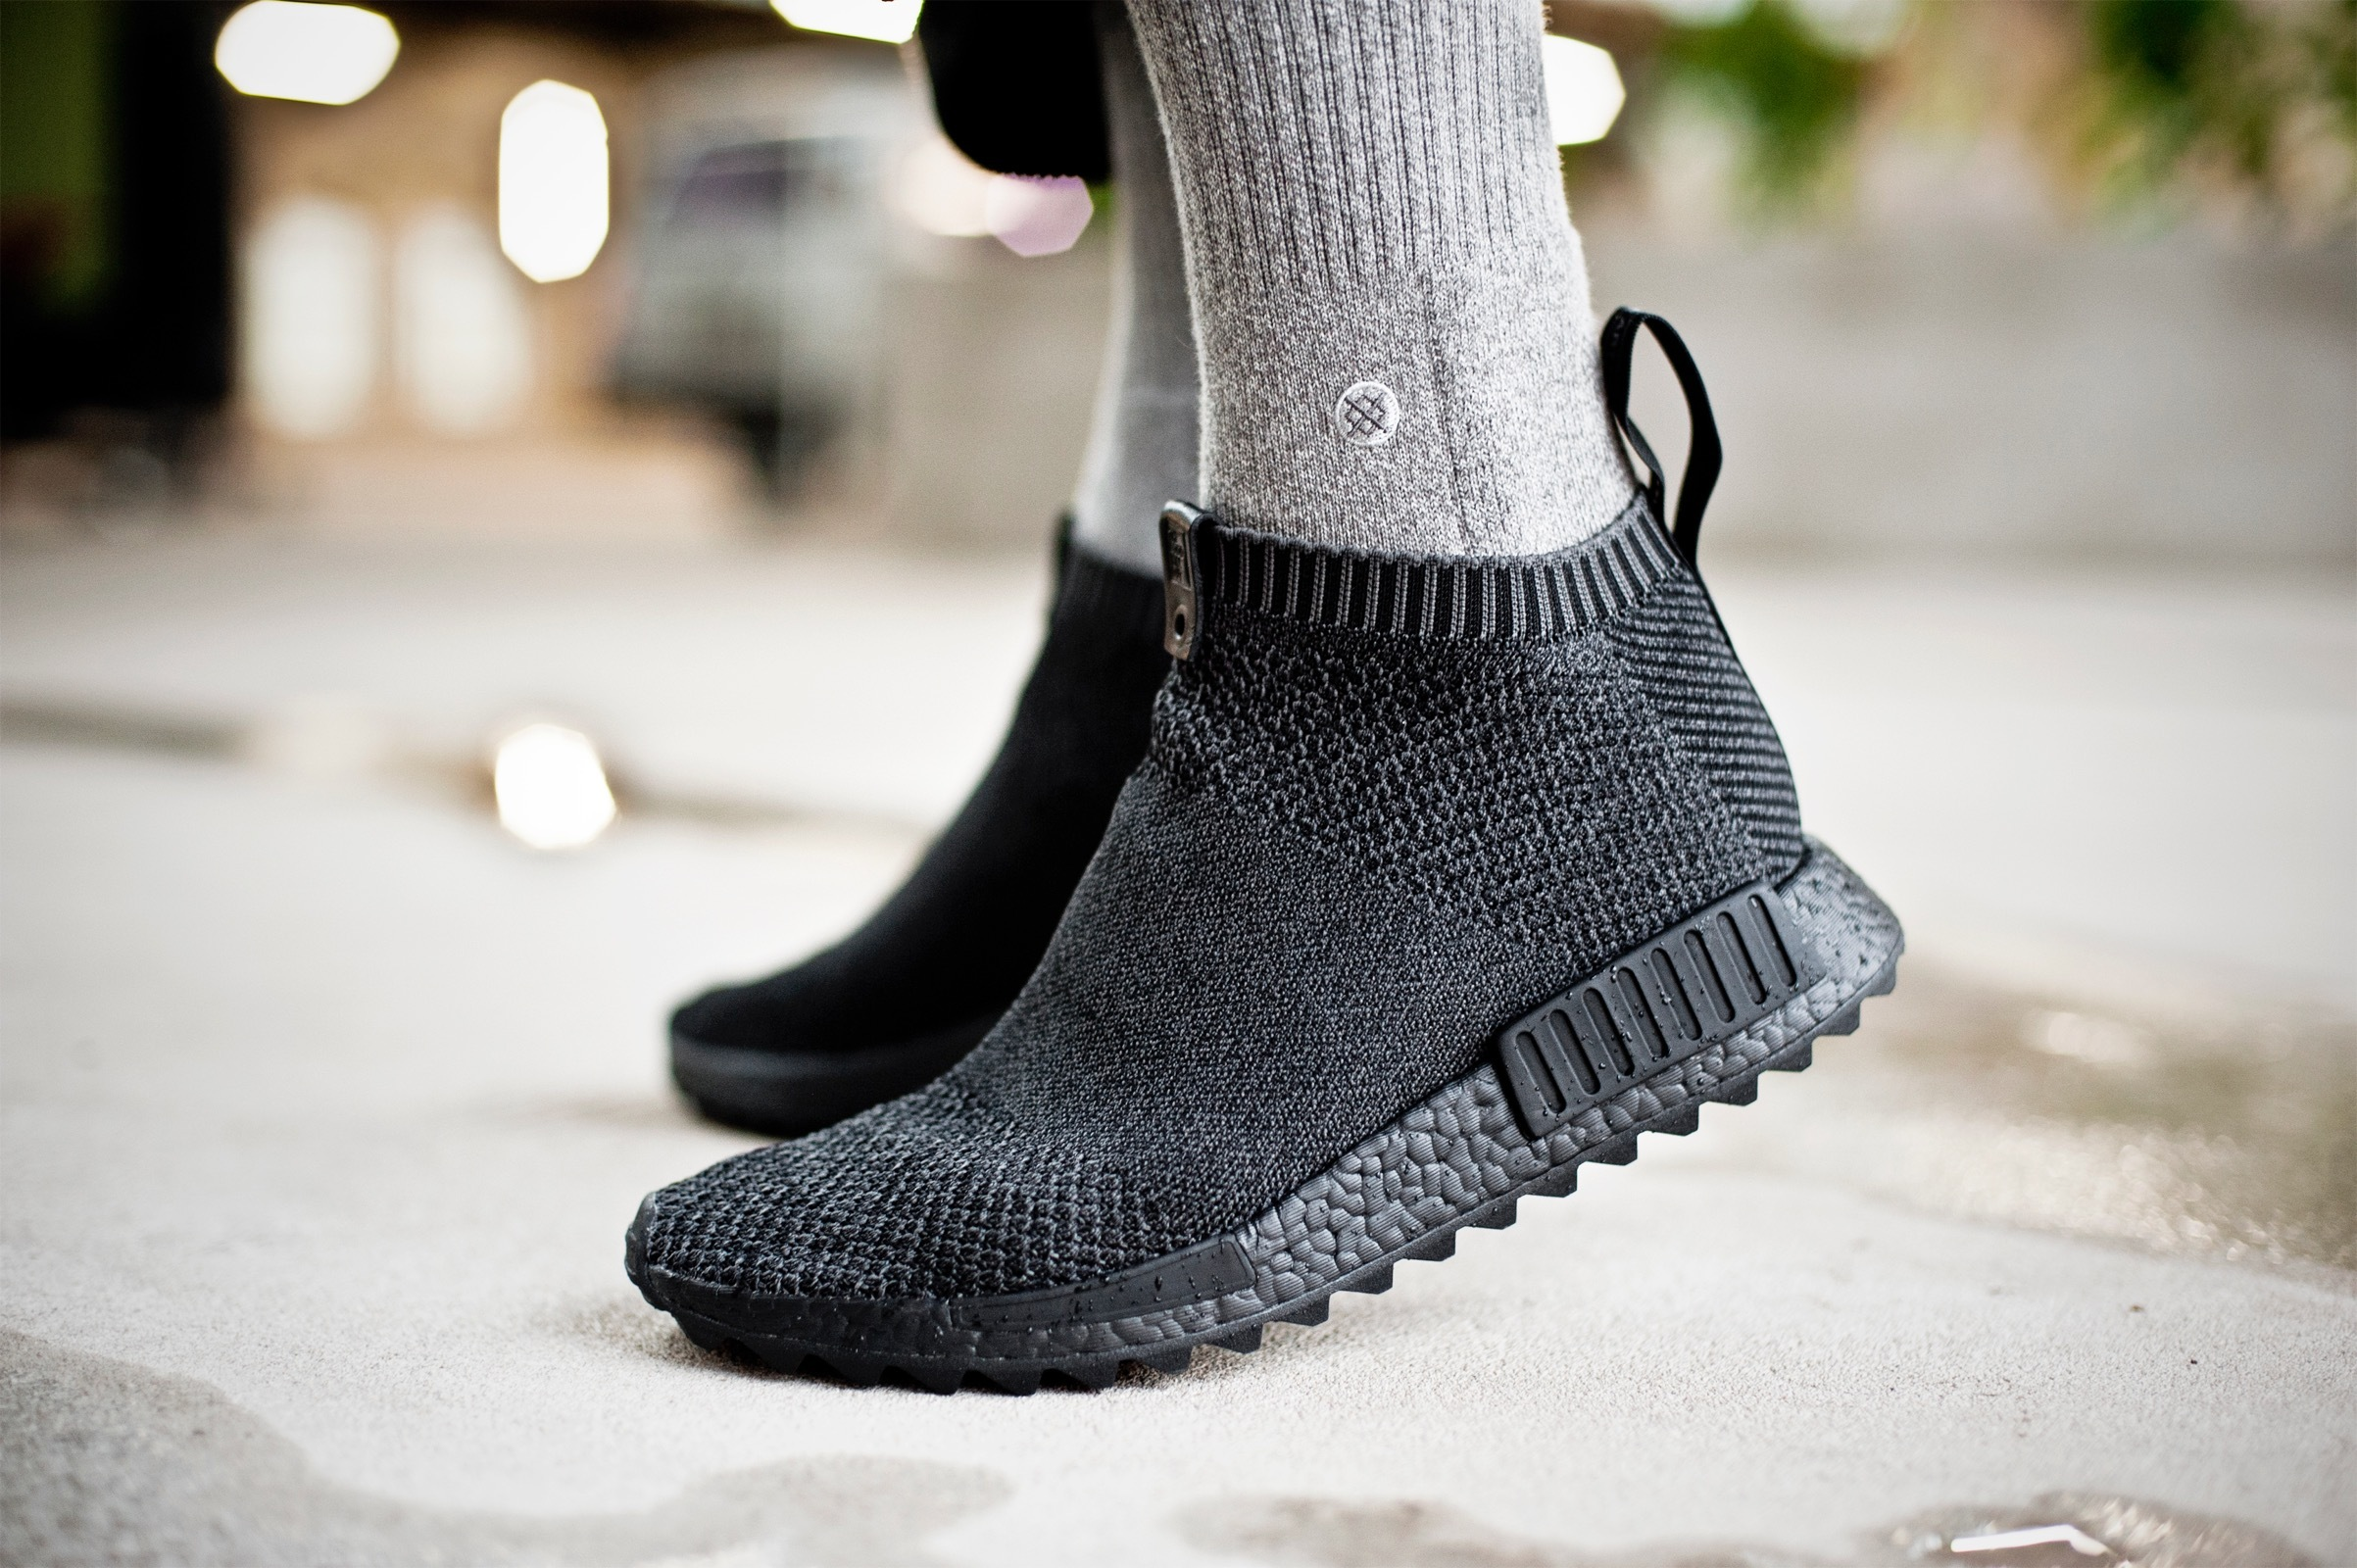 adidas Consortium x The Good Will Out NMD CS1 City Sock PK Primeknit ... b348427cc